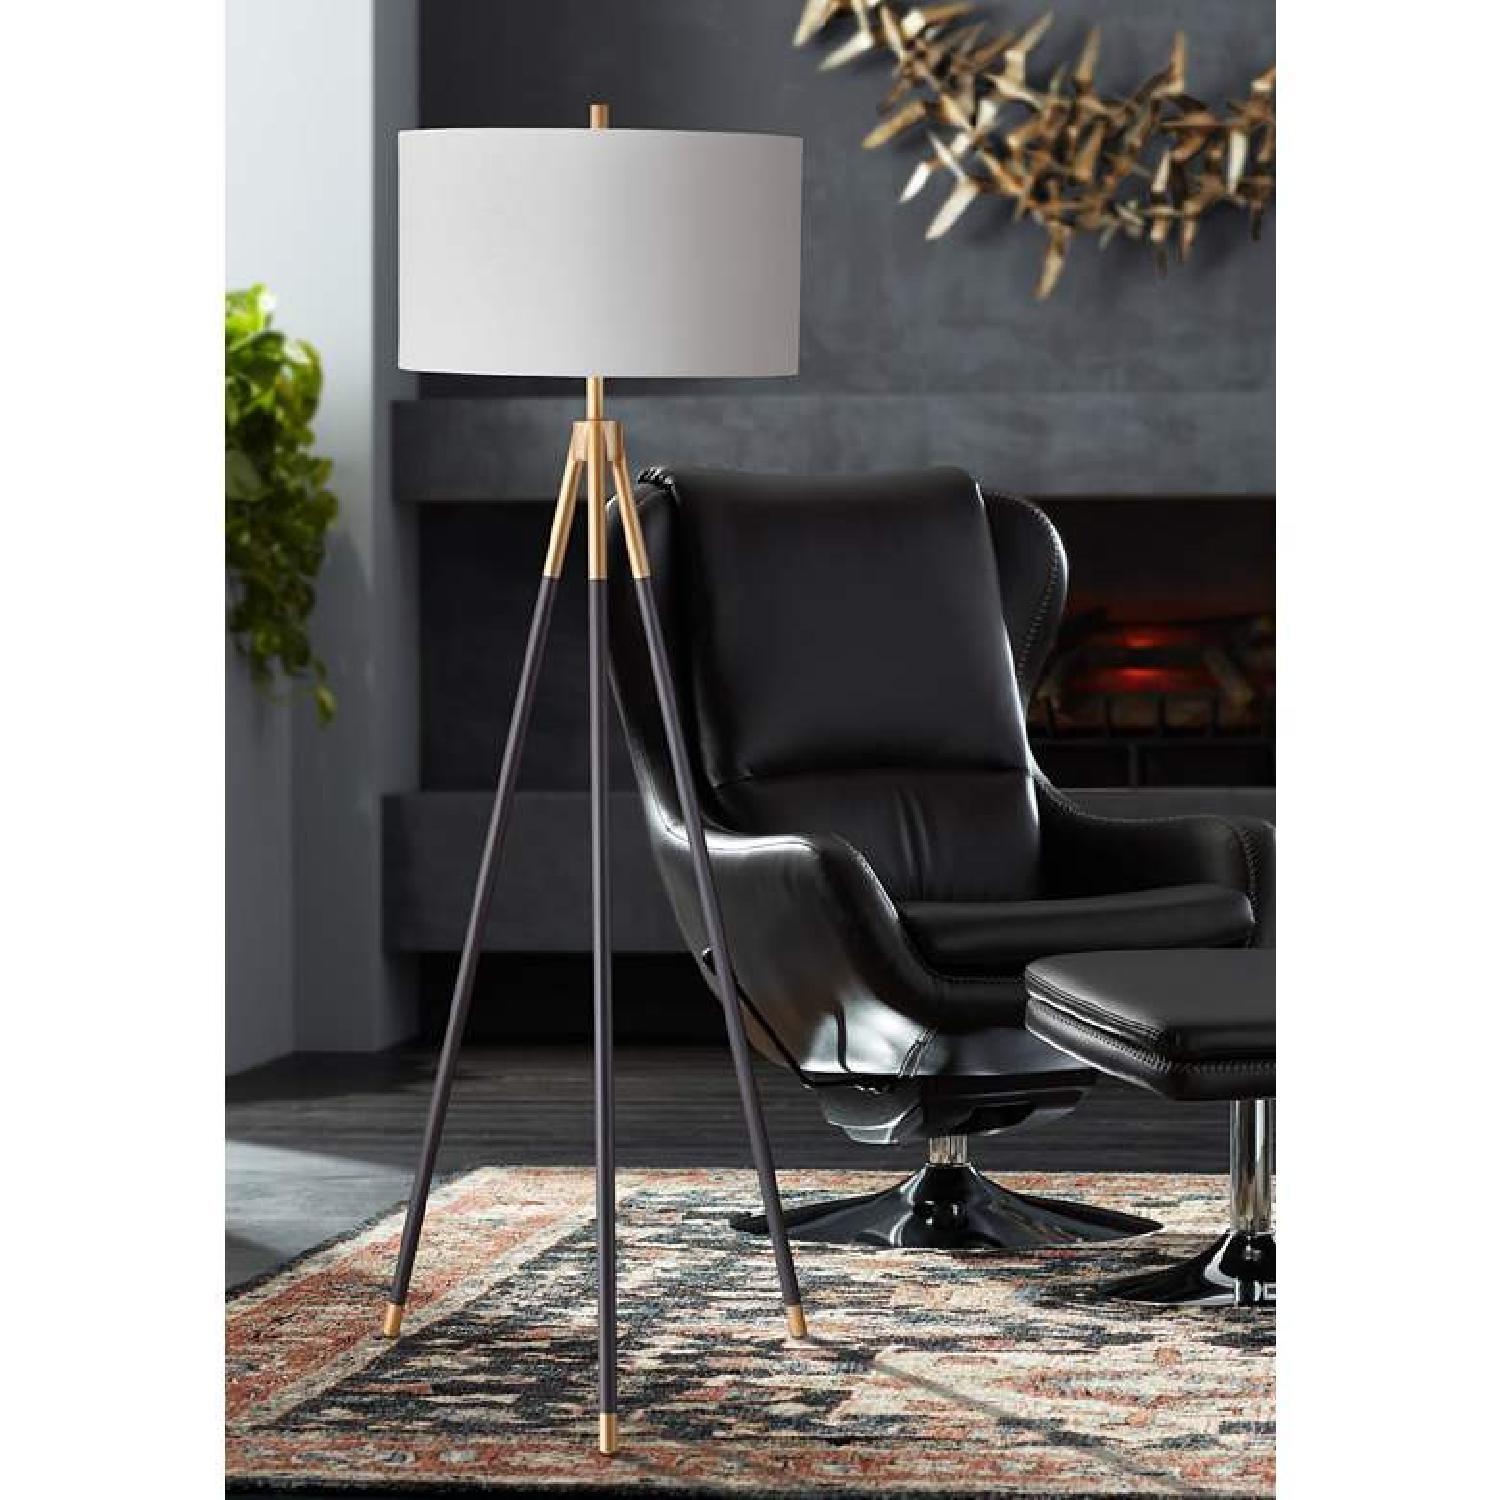 Rowe Furniture Black and Gold Tripod Floor Lamp - image-4